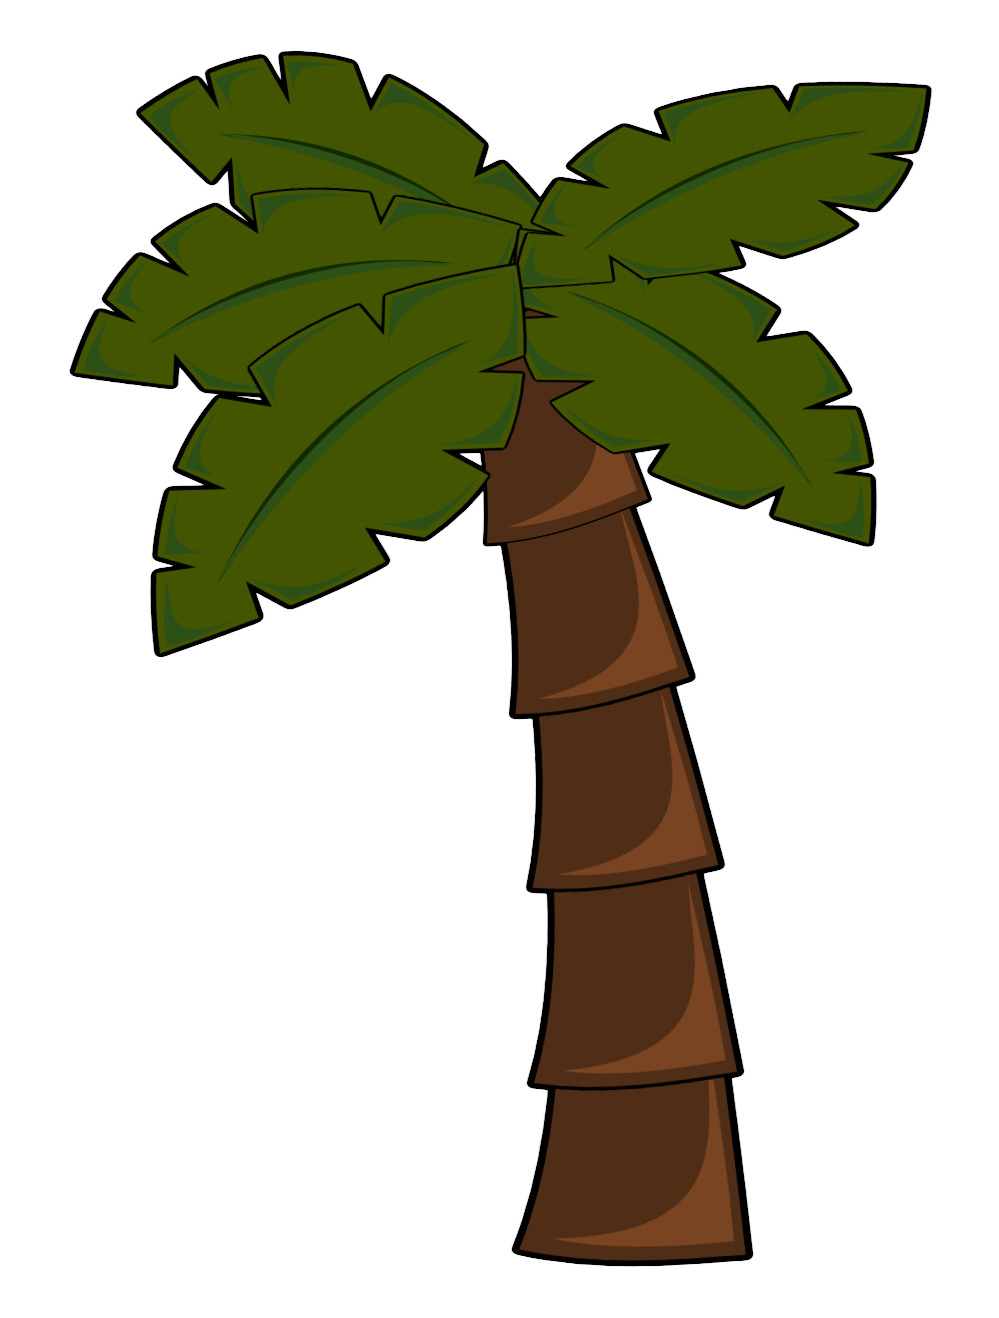 Tree map clipart